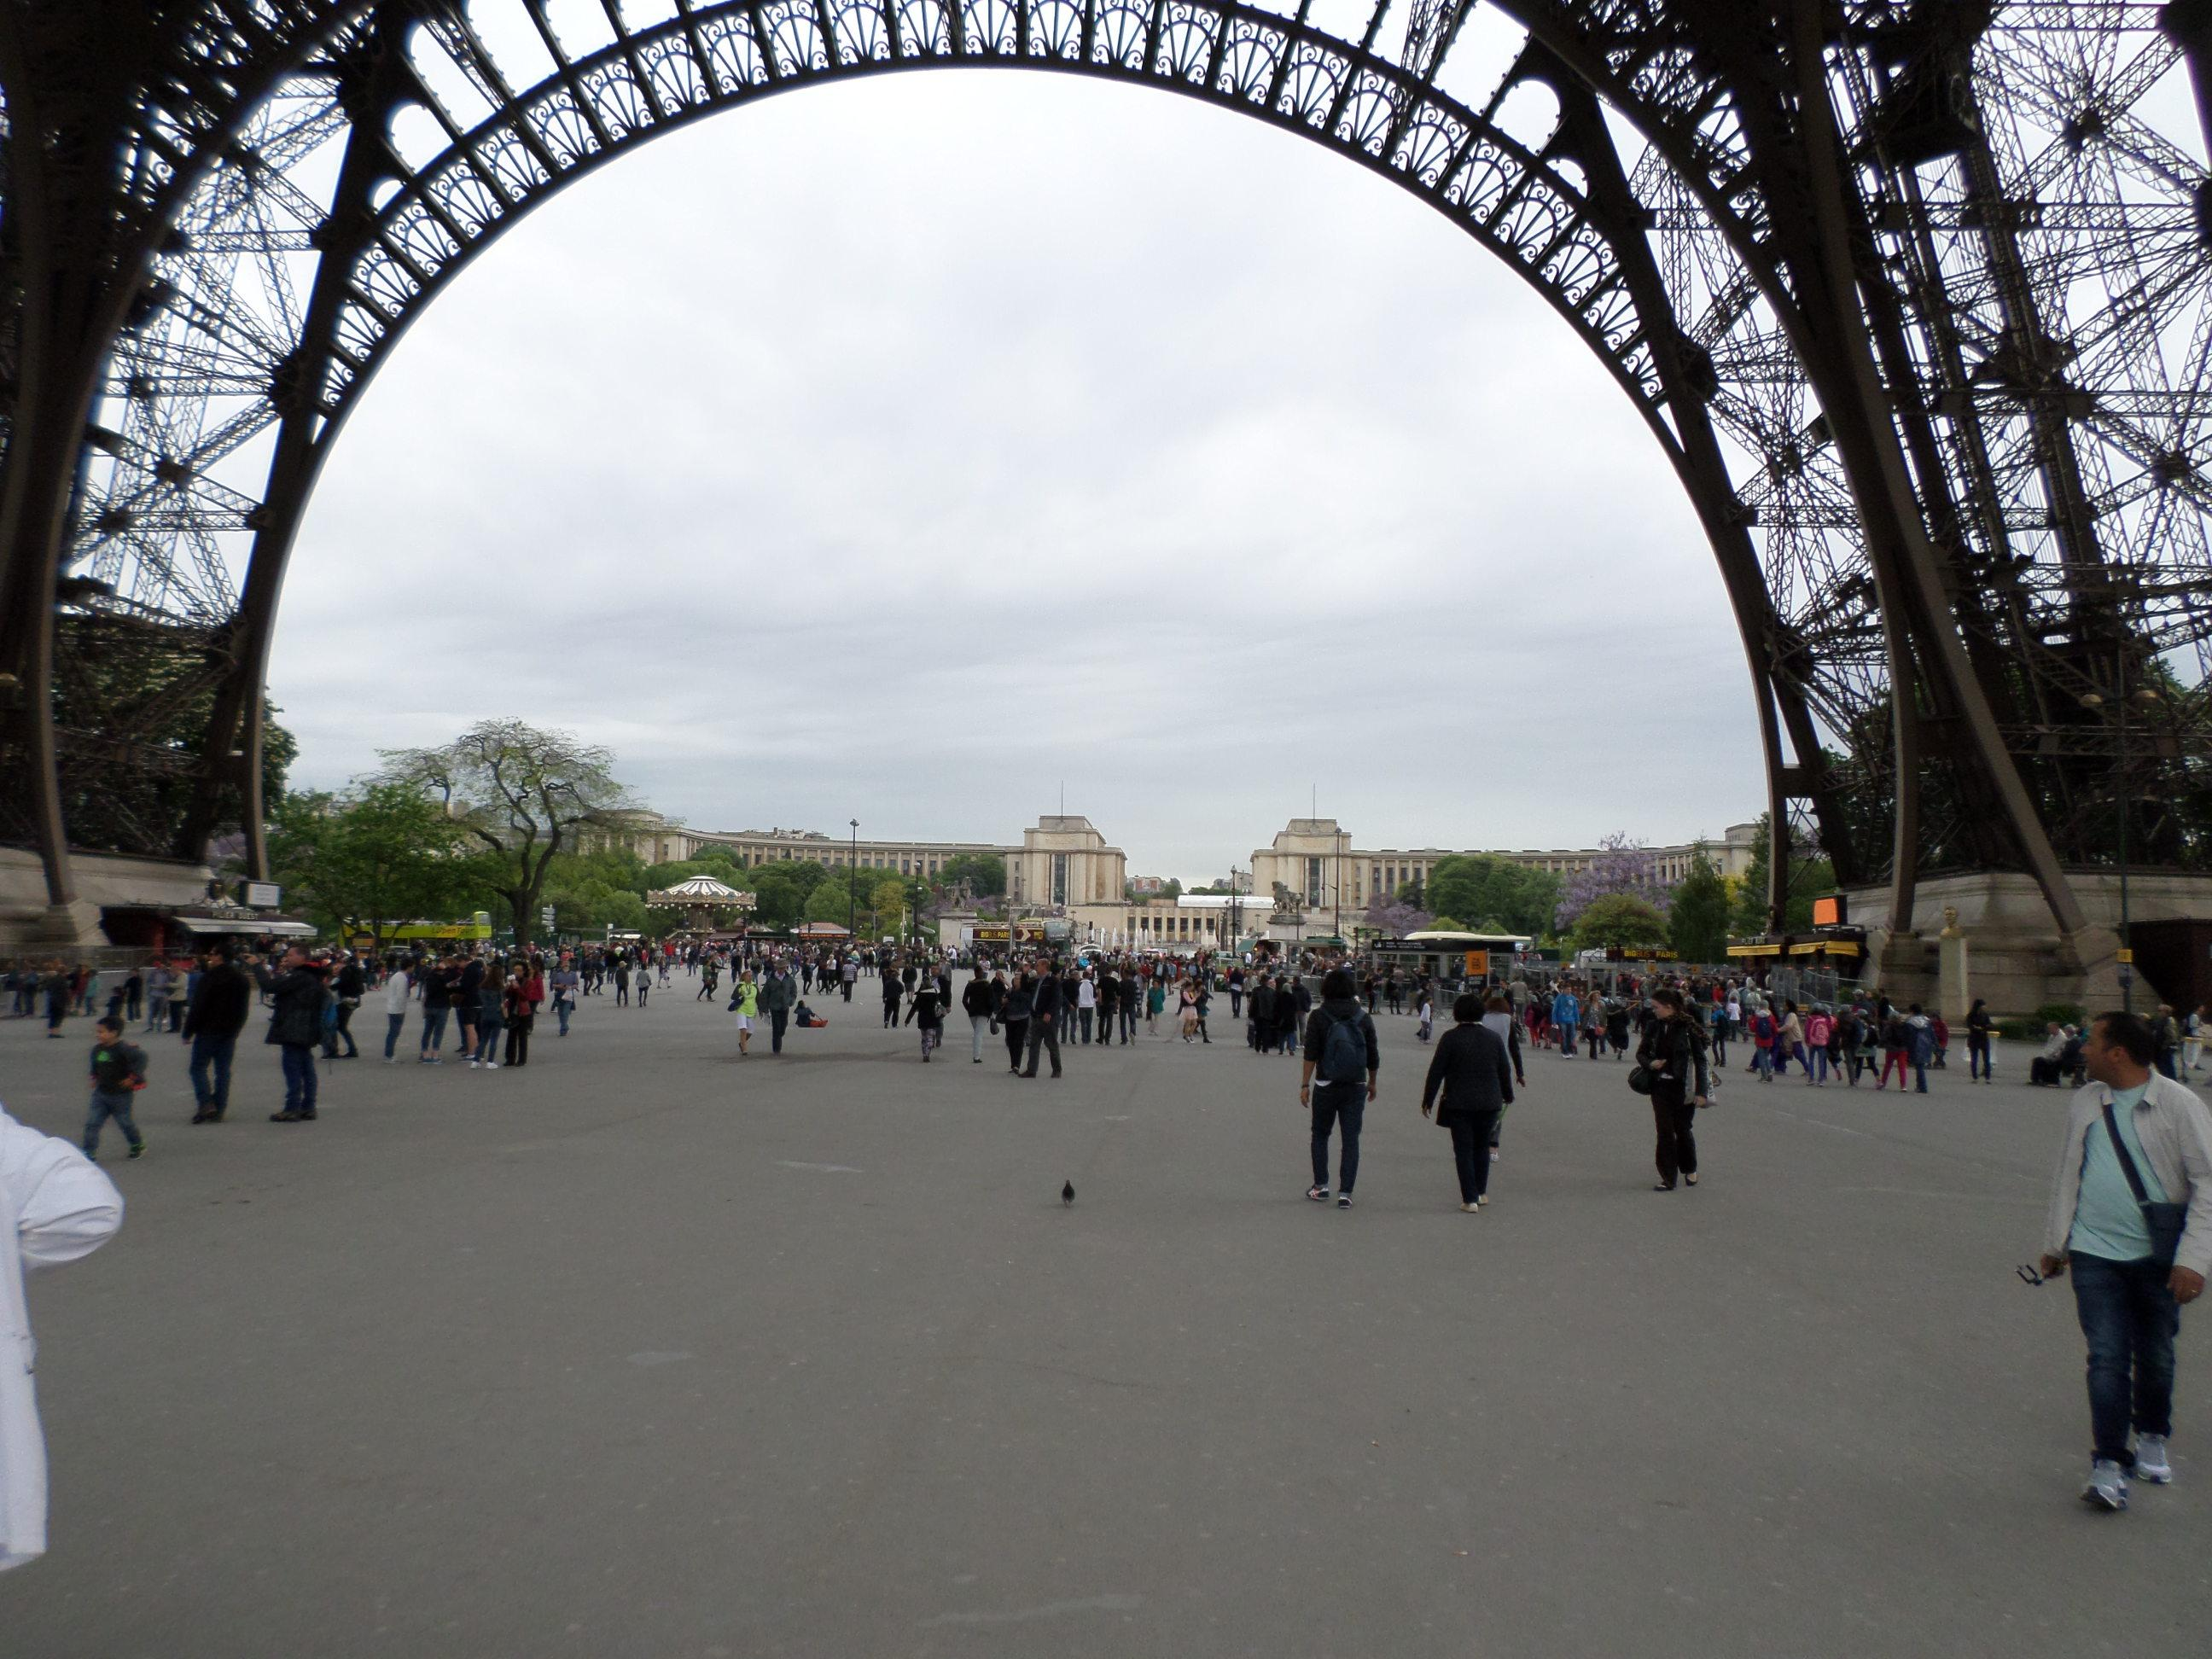 The base of the Eiffel Tower. Click on the large picture for more pictures and notes about